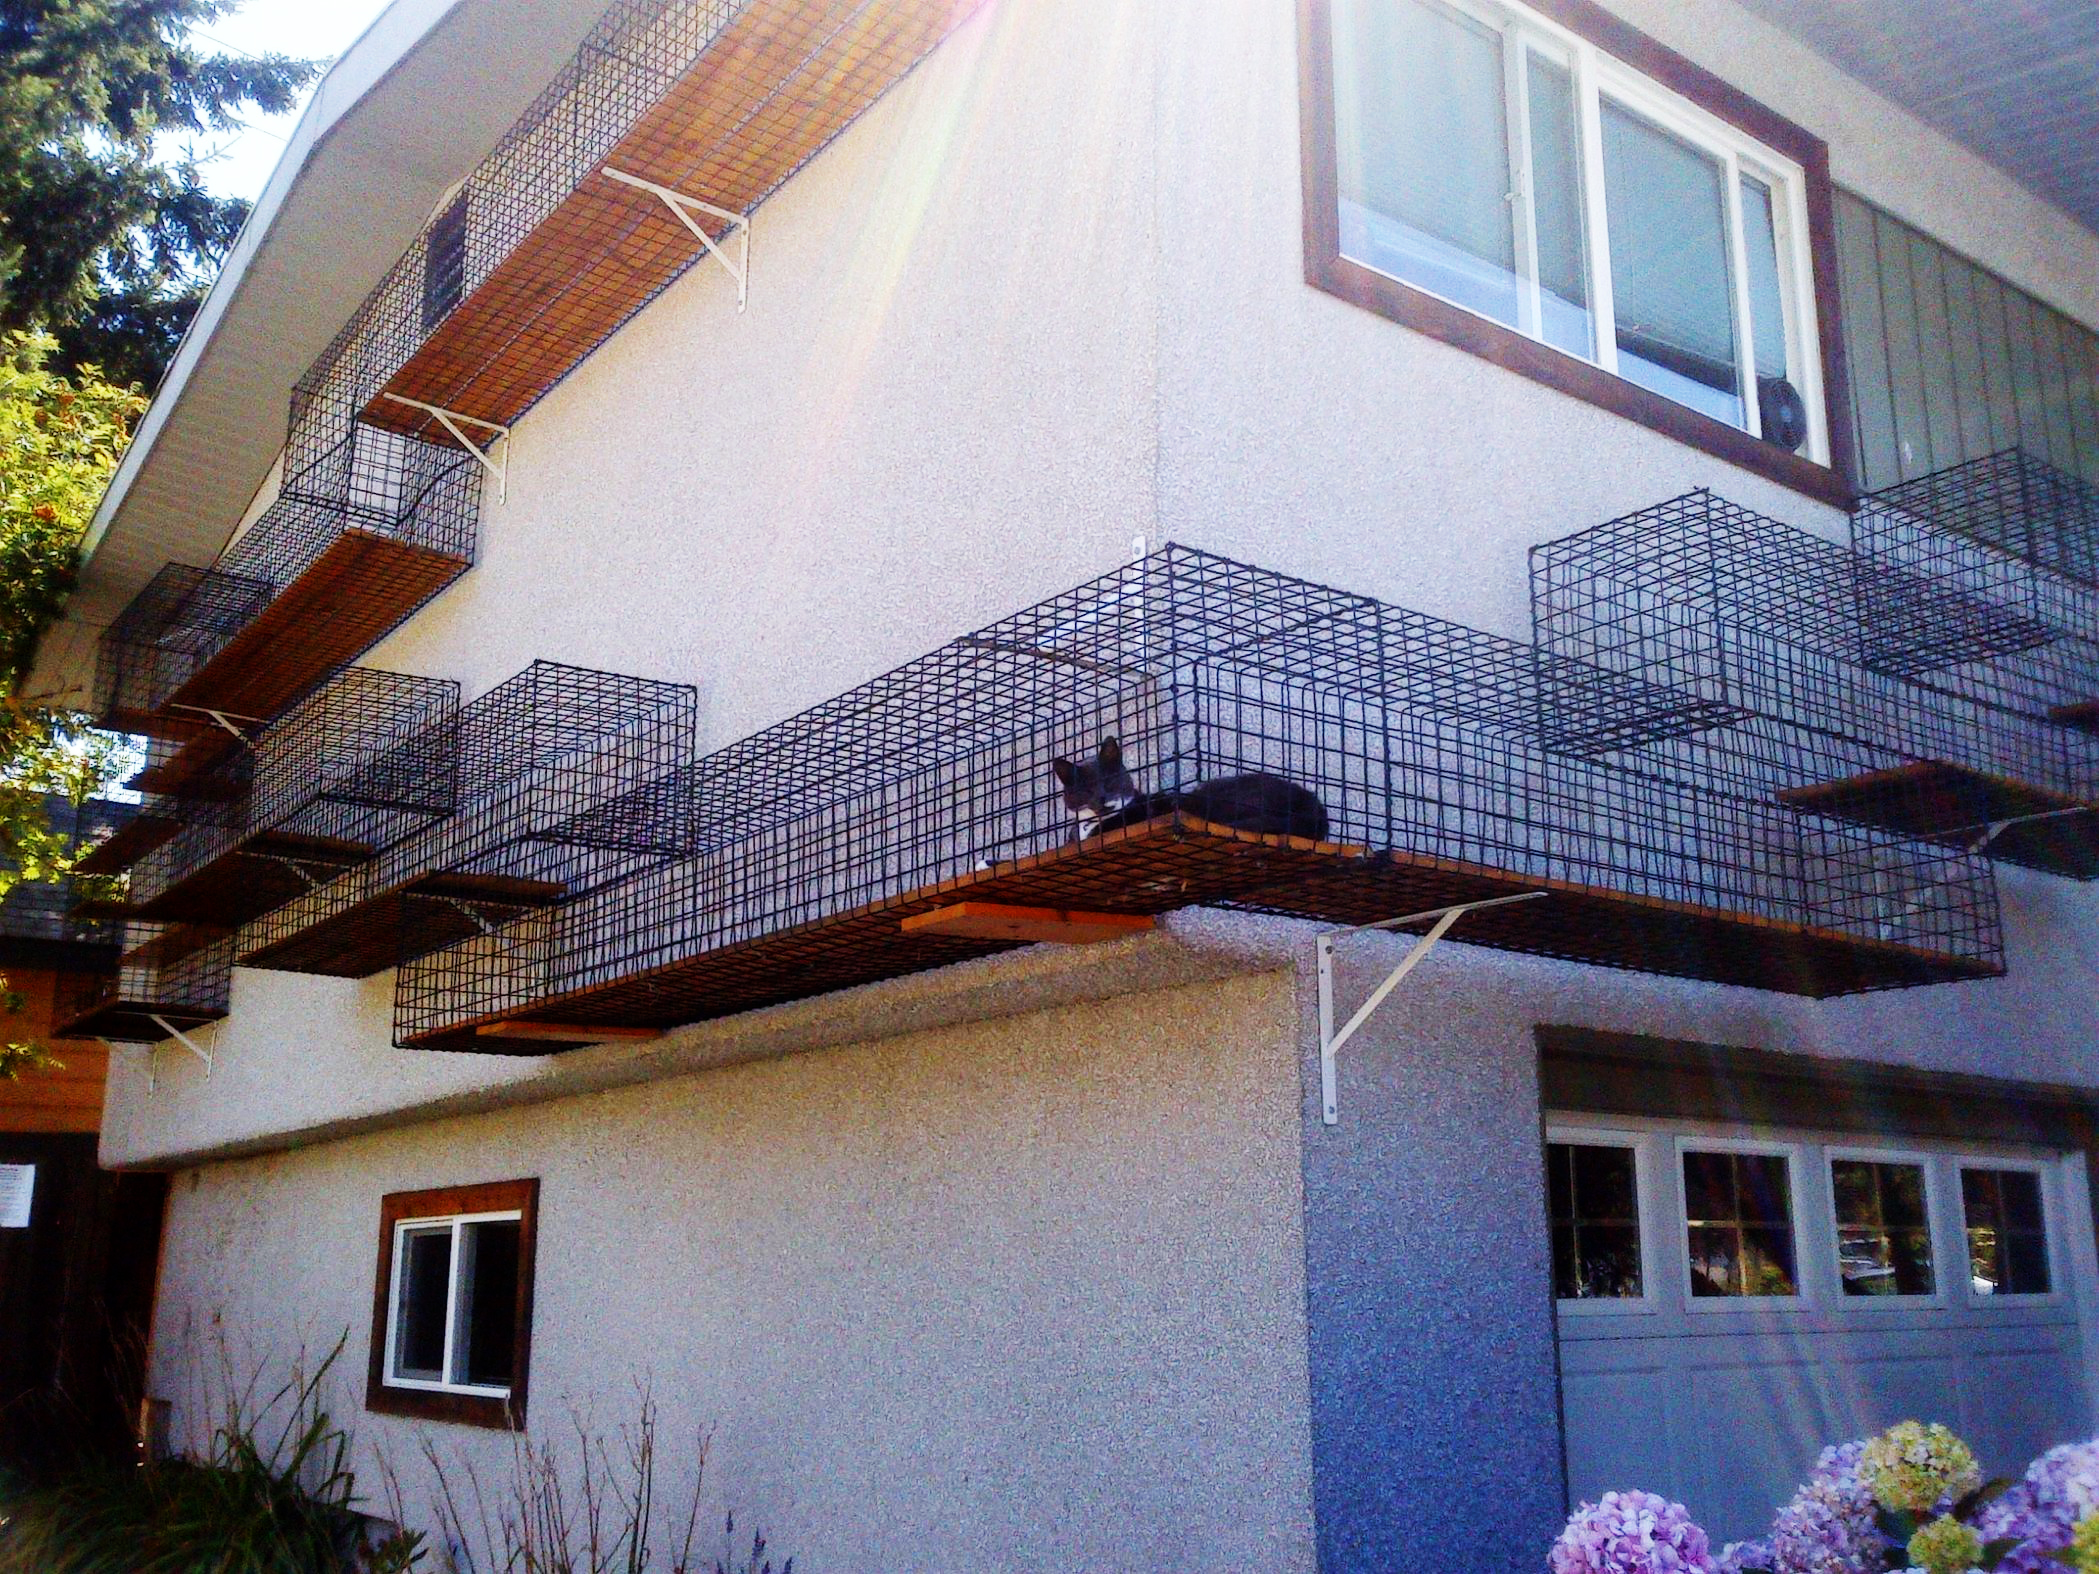 elevatedcatenclosure copy